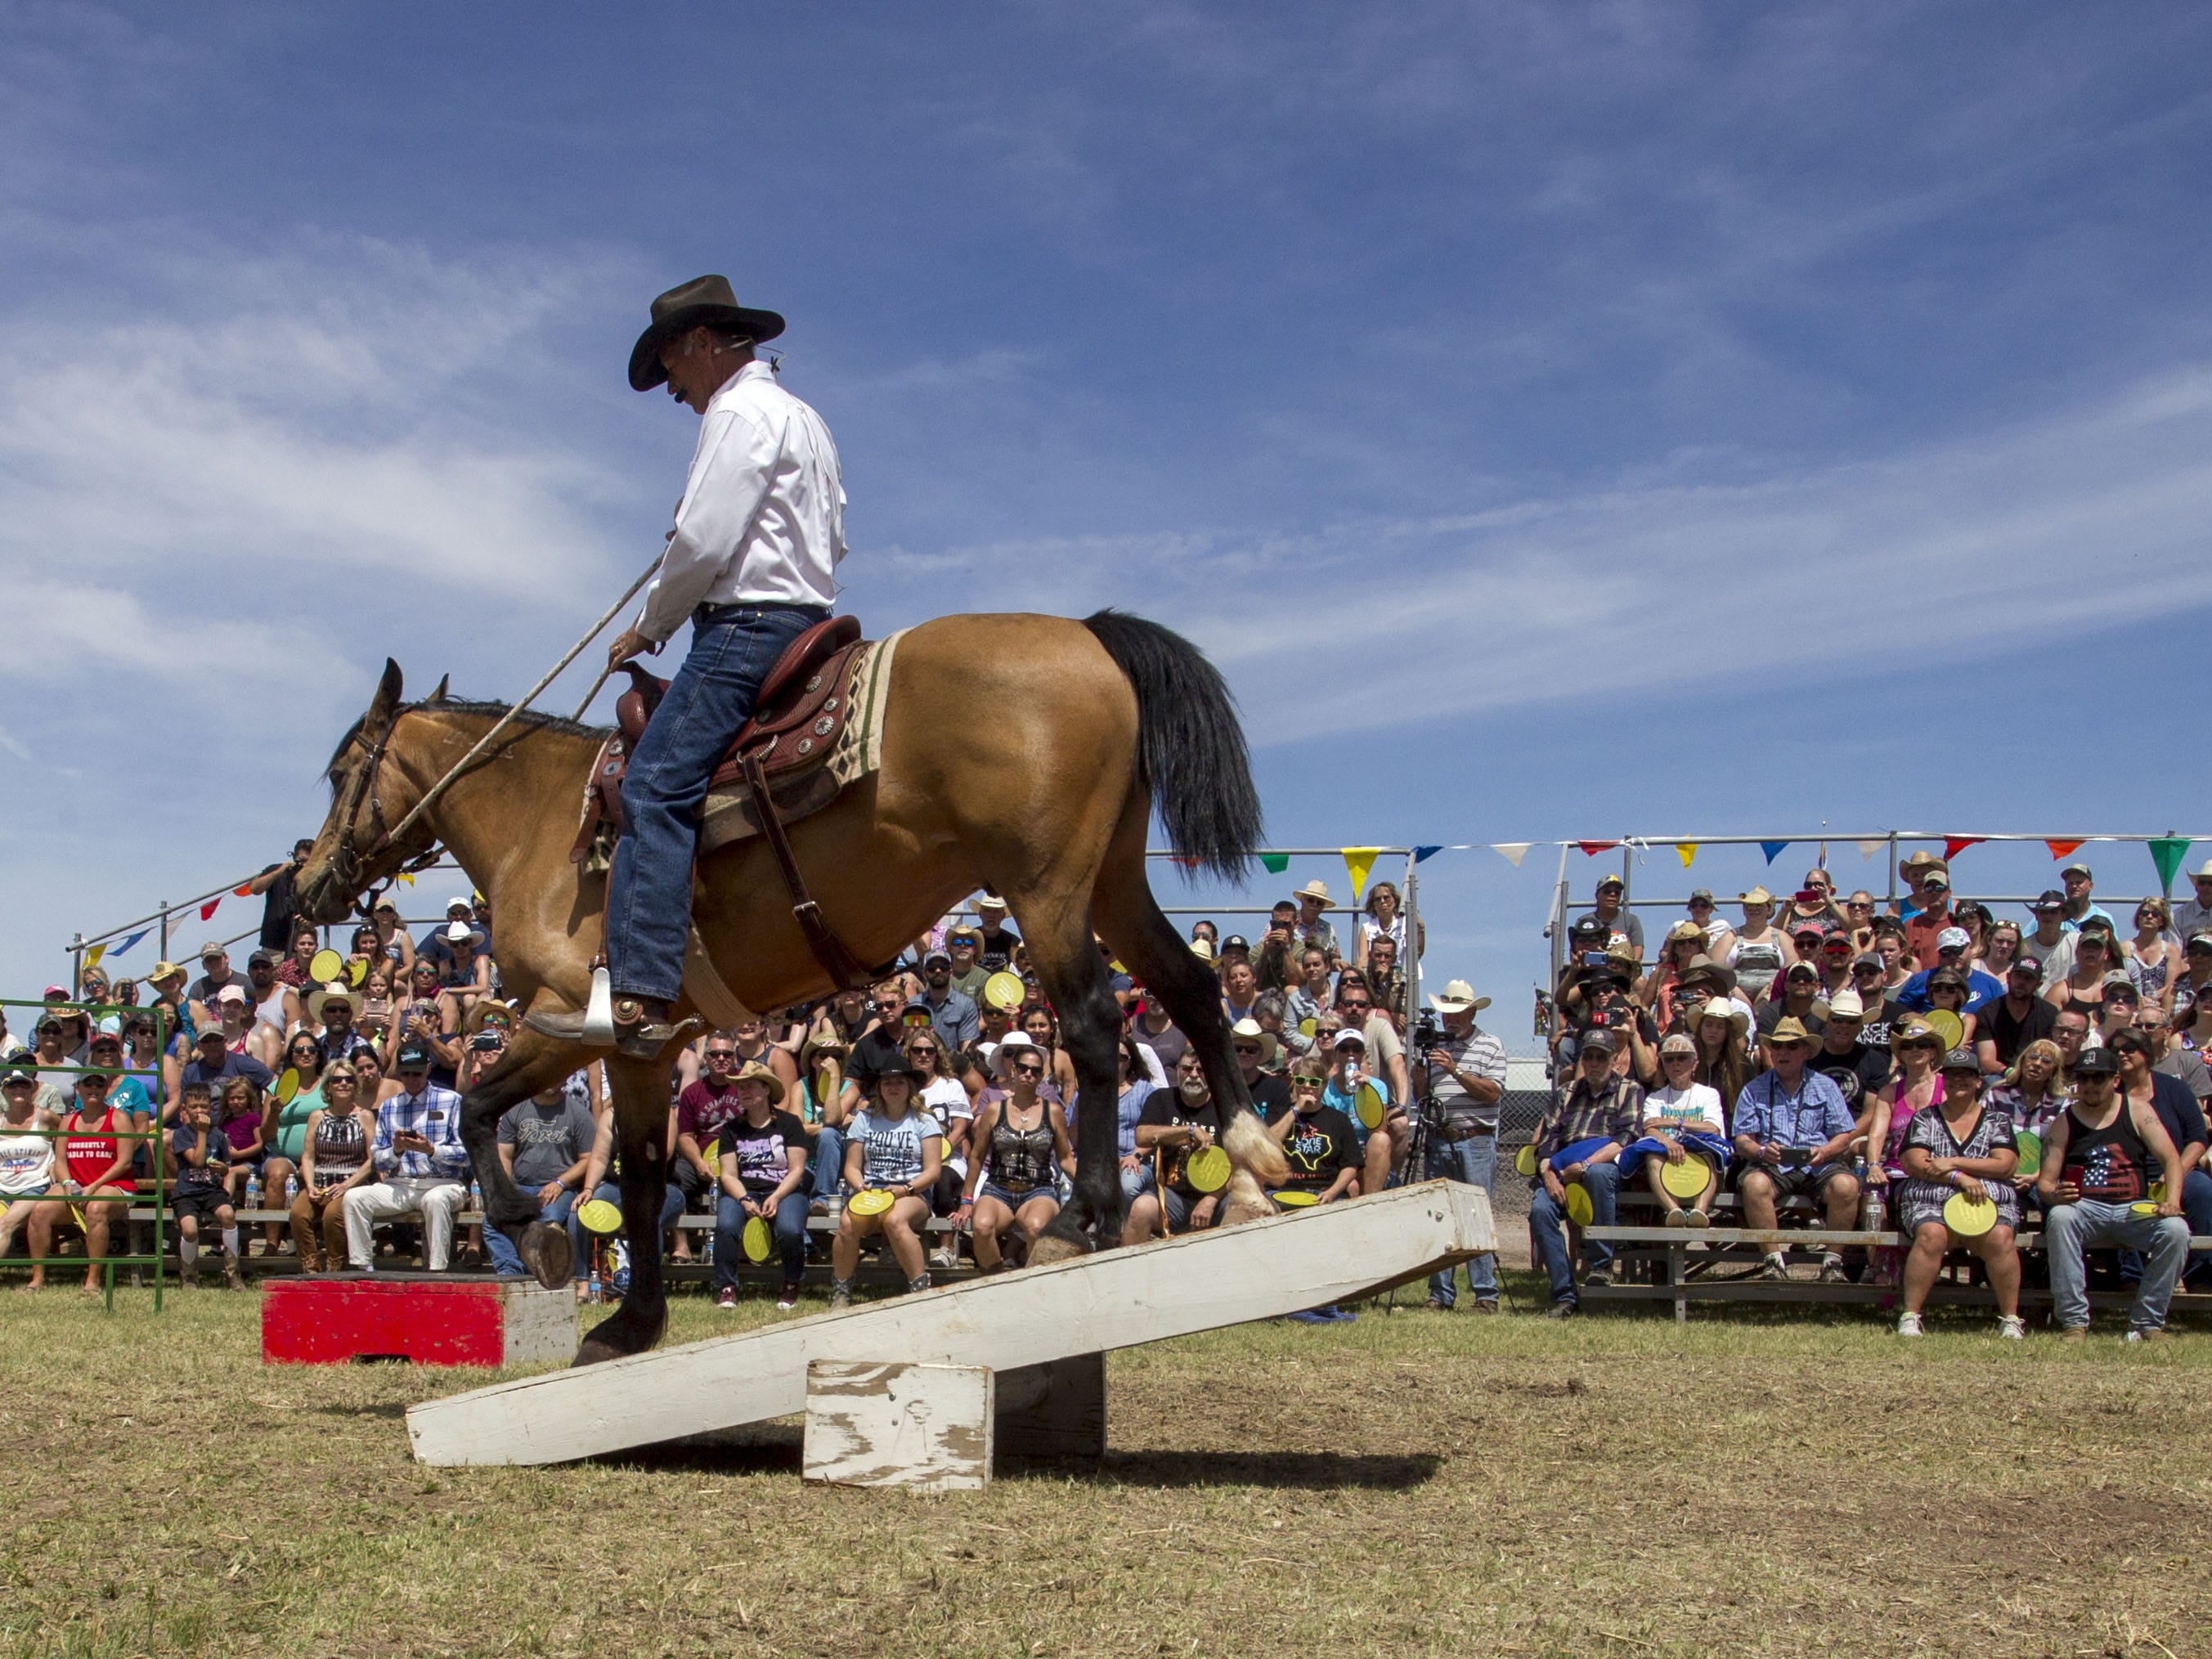 During his sermon, ordained pastor Randy Helm demonstrates with his horse, Starbuck, how to overcome obstacles during Cowboy Church at Country Thunder Arizona on Sunday, April 14, 2019, in Florence, Arizona.